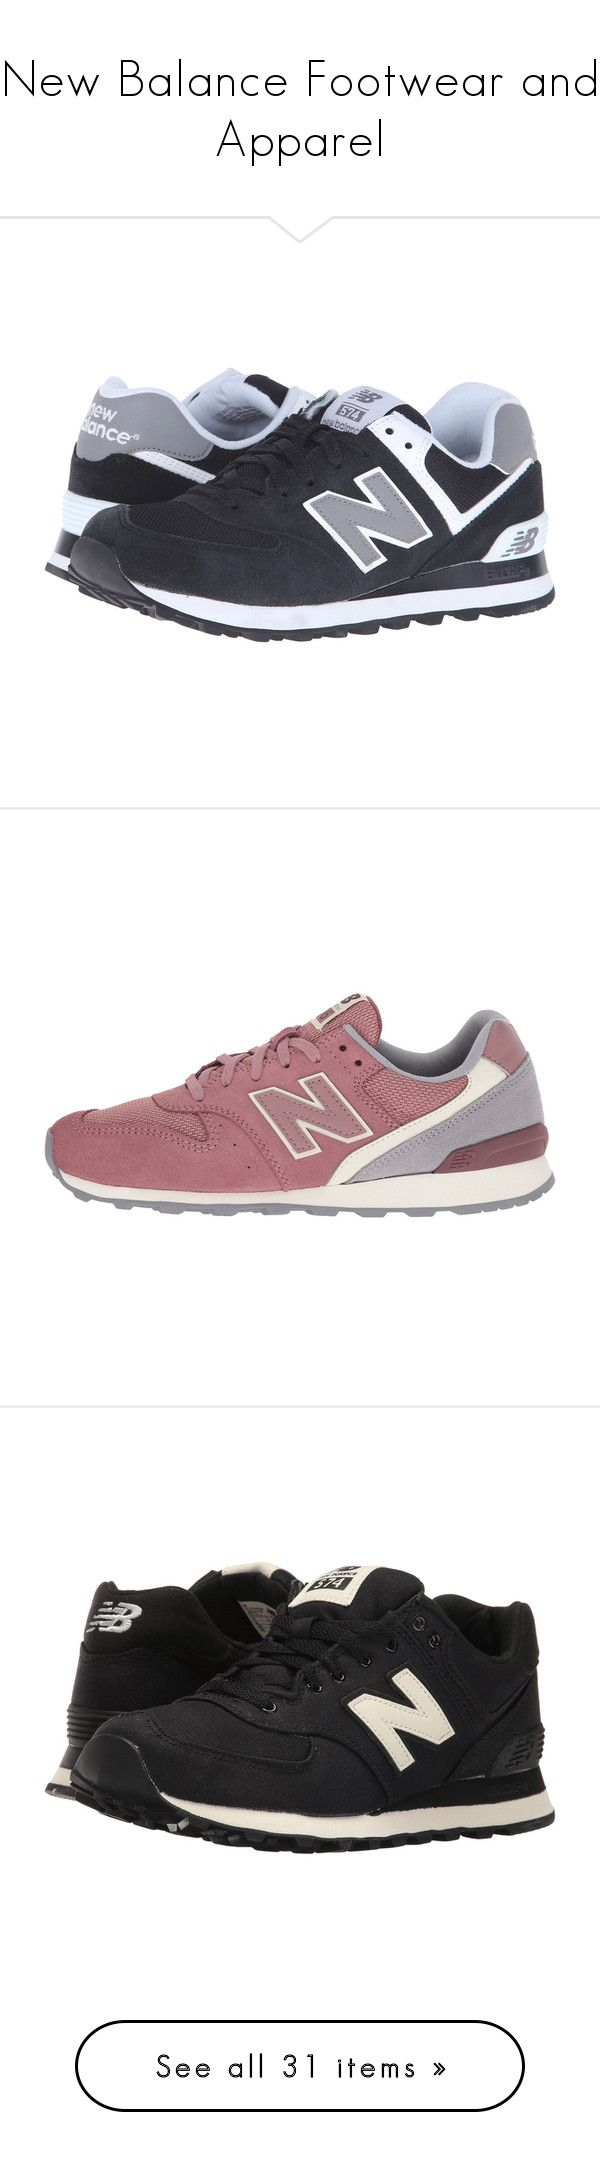 """""""New Balance Footwear and Apparel"""" by zappos ❤ liked on Polyvore featuring shoes, athletic shoes, sneakers, wide width shoes, wide athletic shoes, black and white shoes, mesh shoes, lightweight shoes, tenis and suede shoes"""